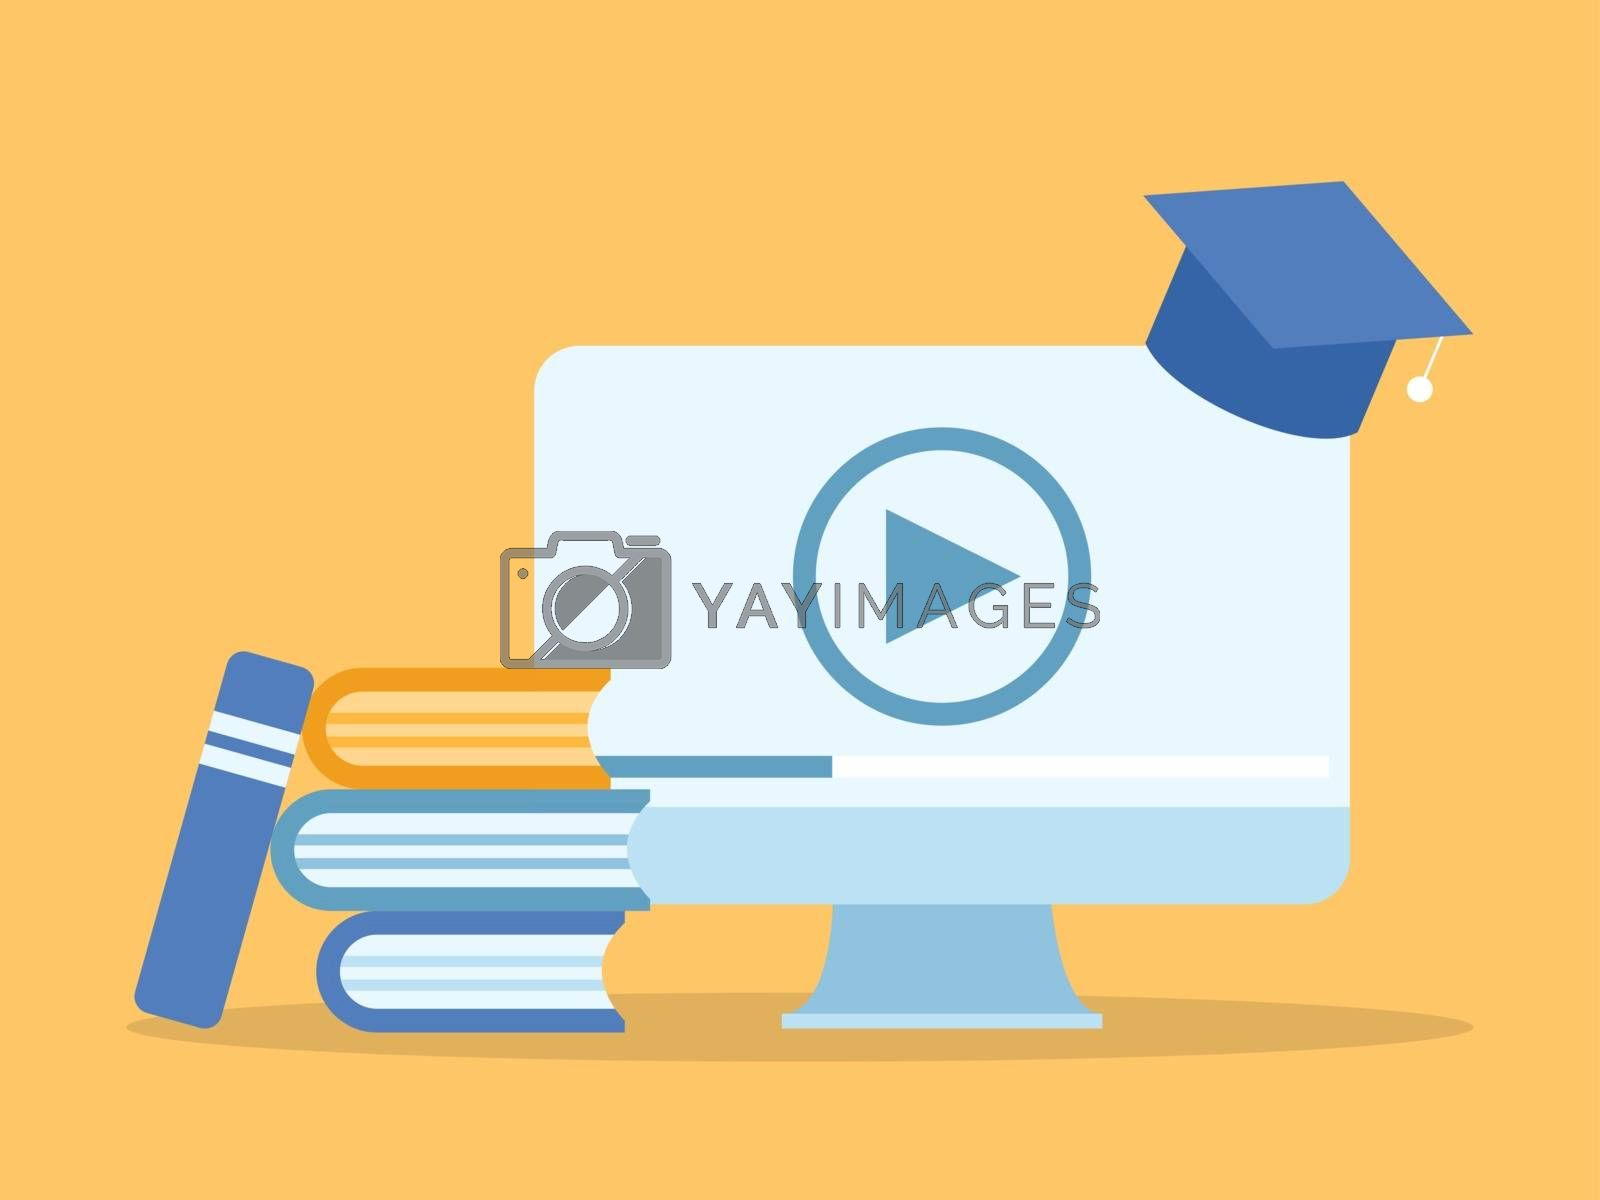 Learning online course in computer. Illustration about E-learning and Online course.